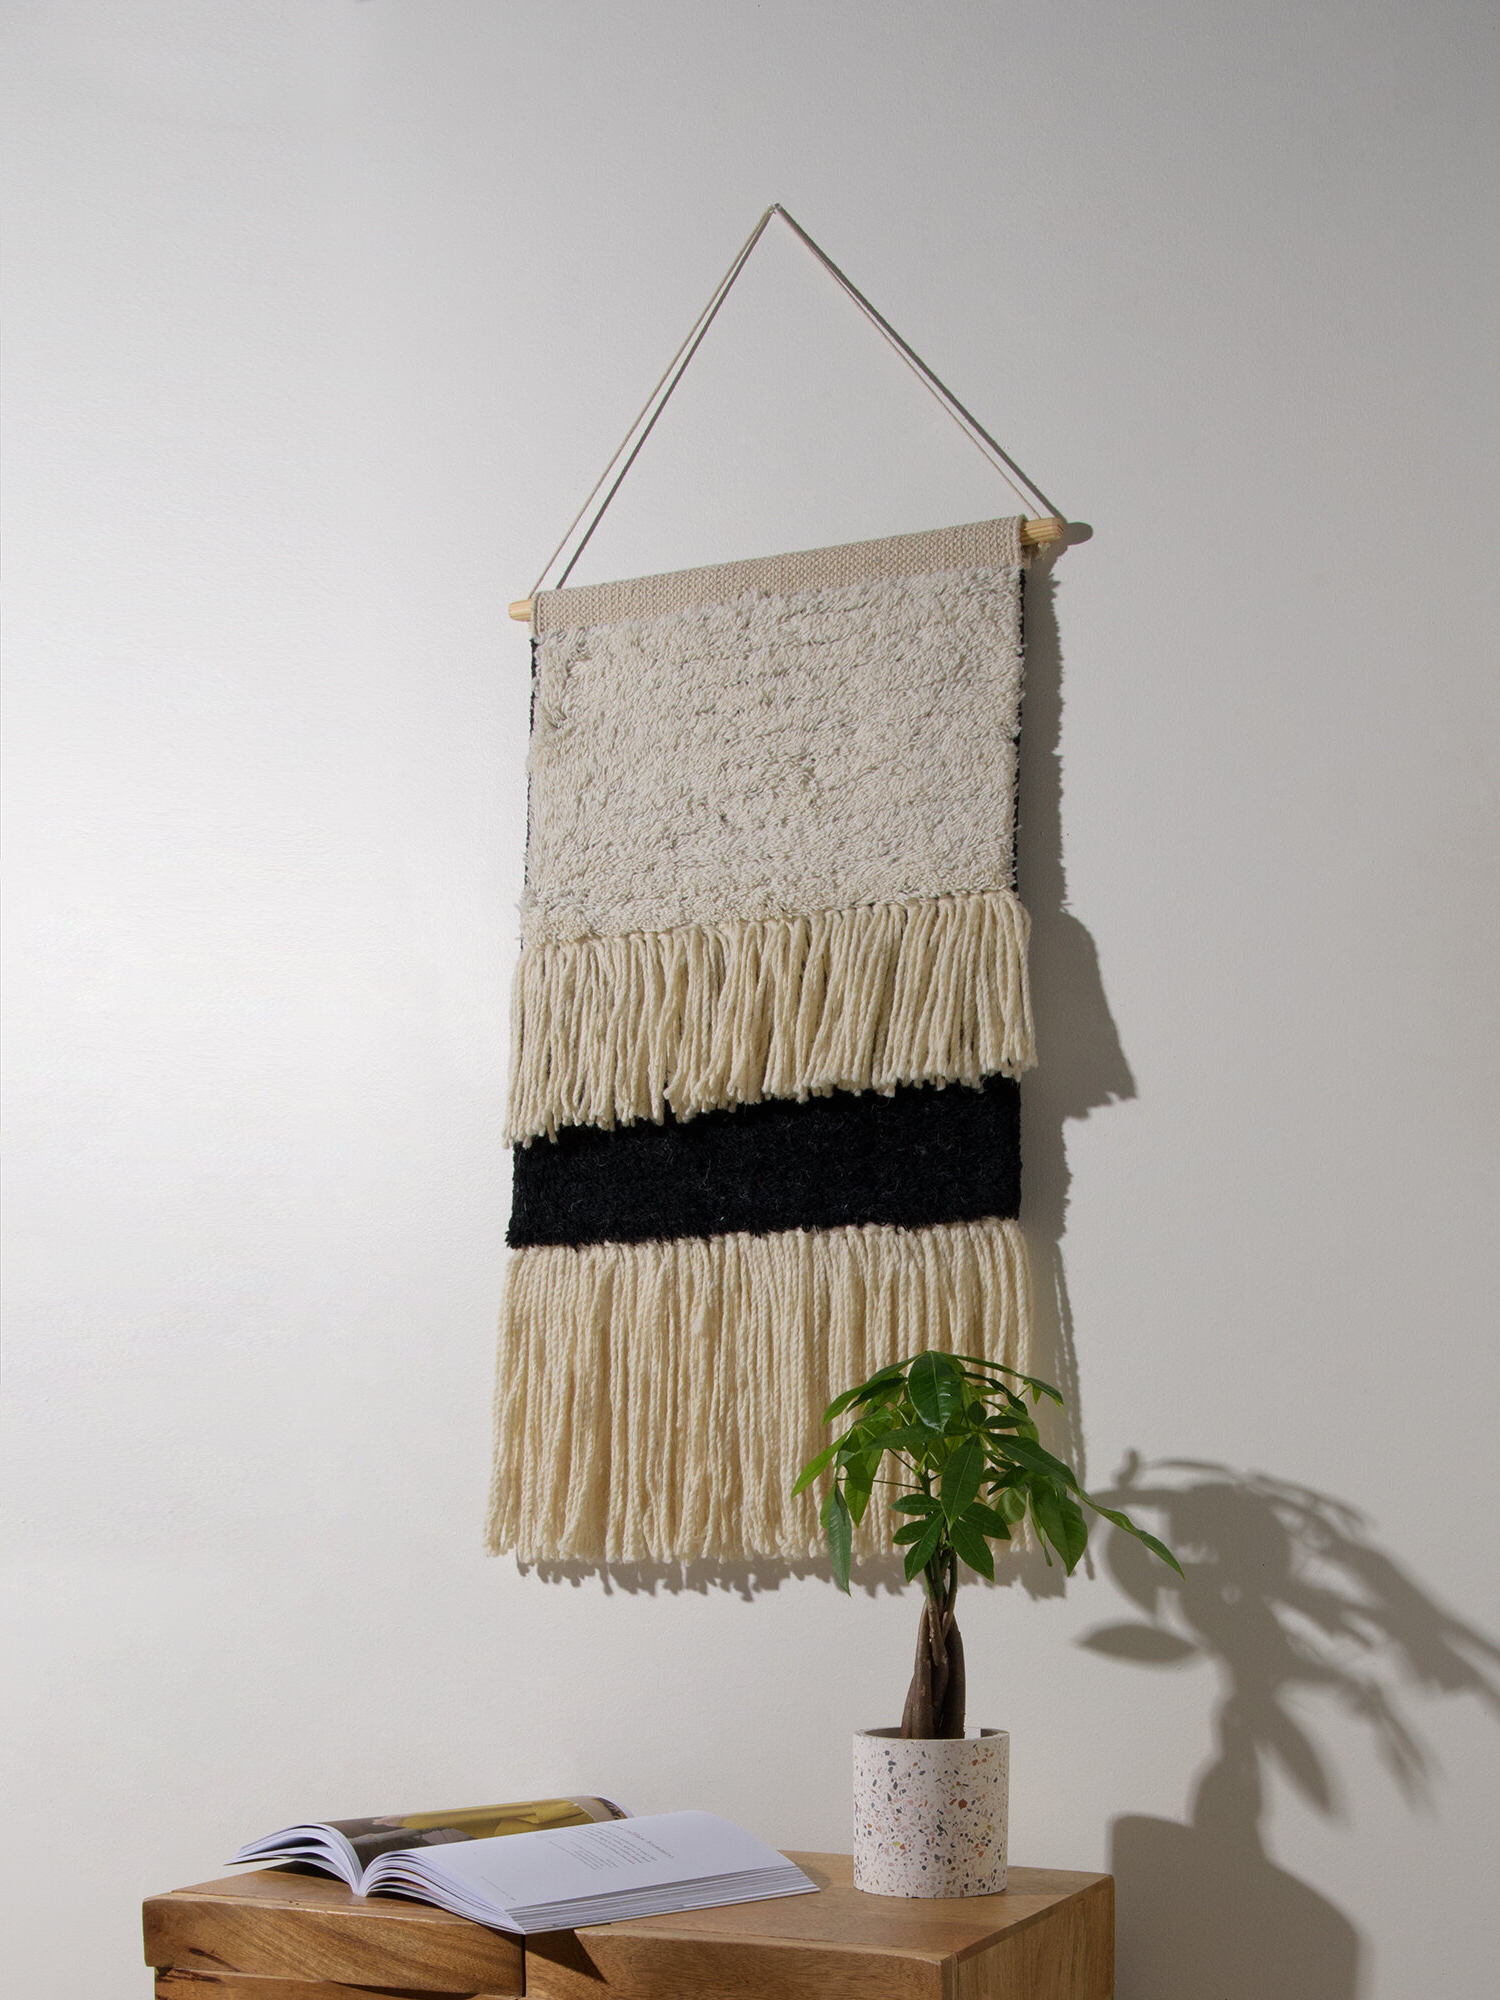 Blended Fabric Wall Hanging With Hanging Accessories Included In Preferred Blended Fabric Wall Hangings (View 12 of 20)